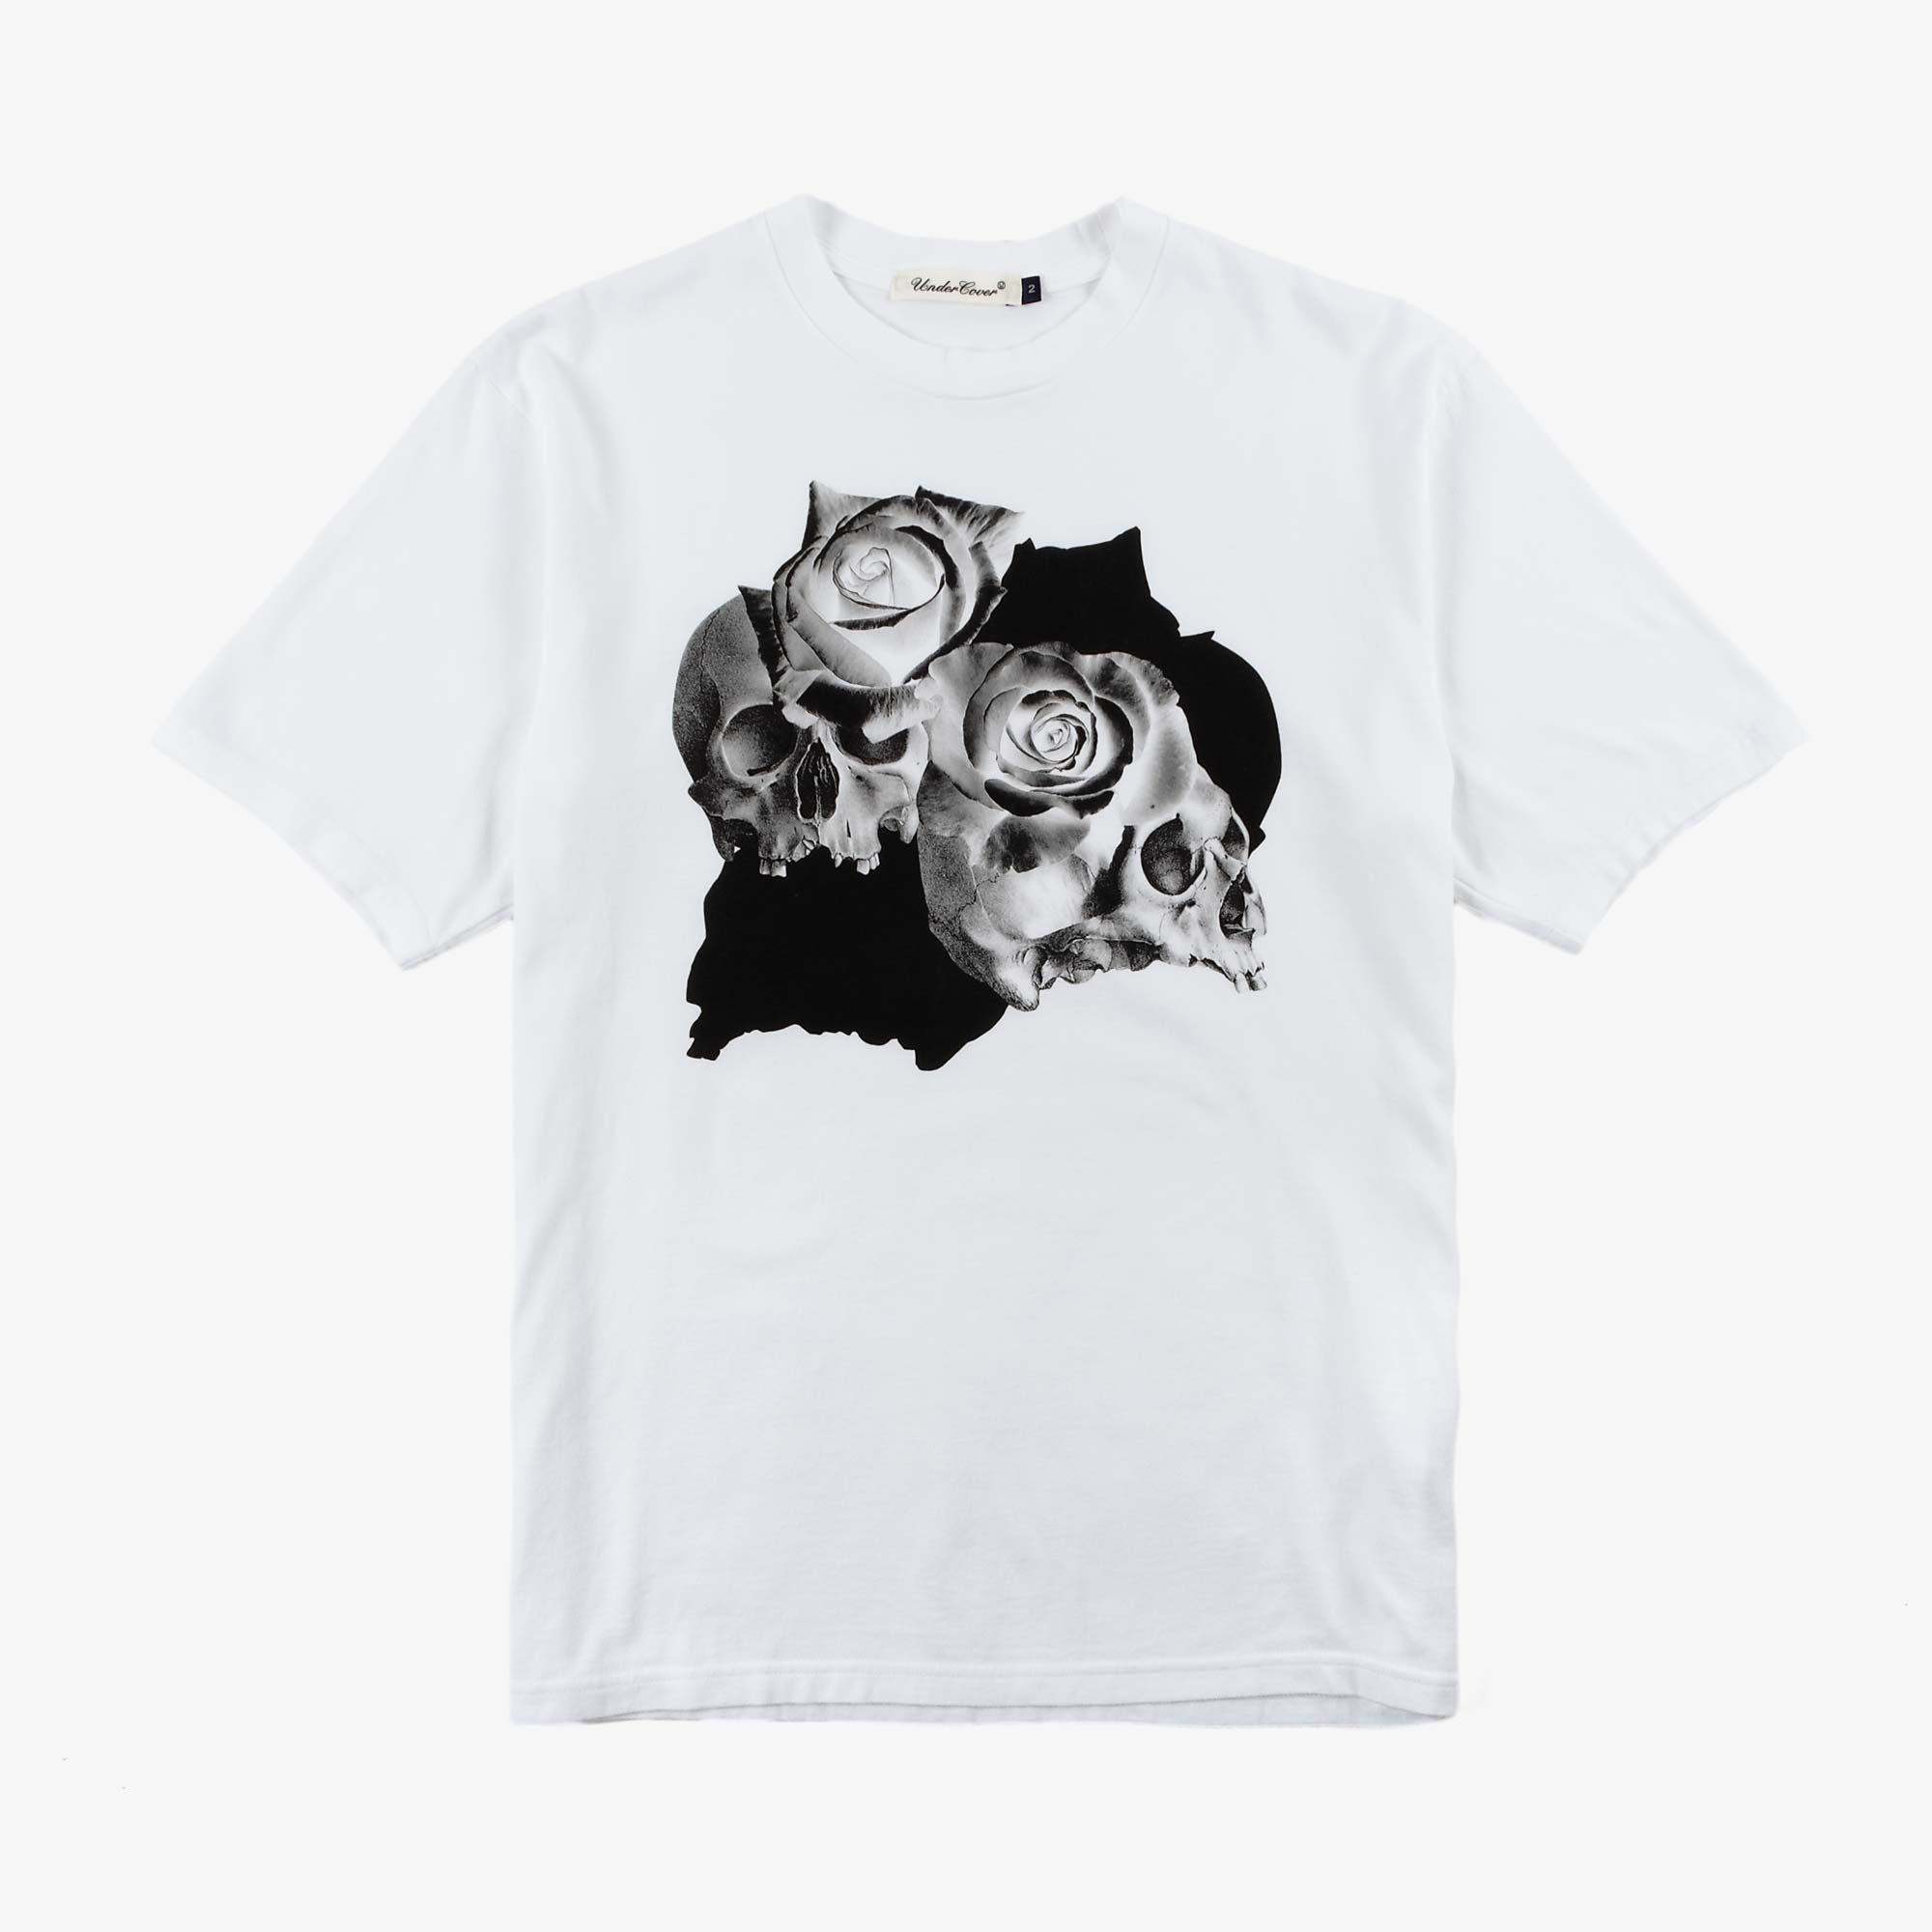 Undercover Roses Skull Tee UC1A3810 - White 1